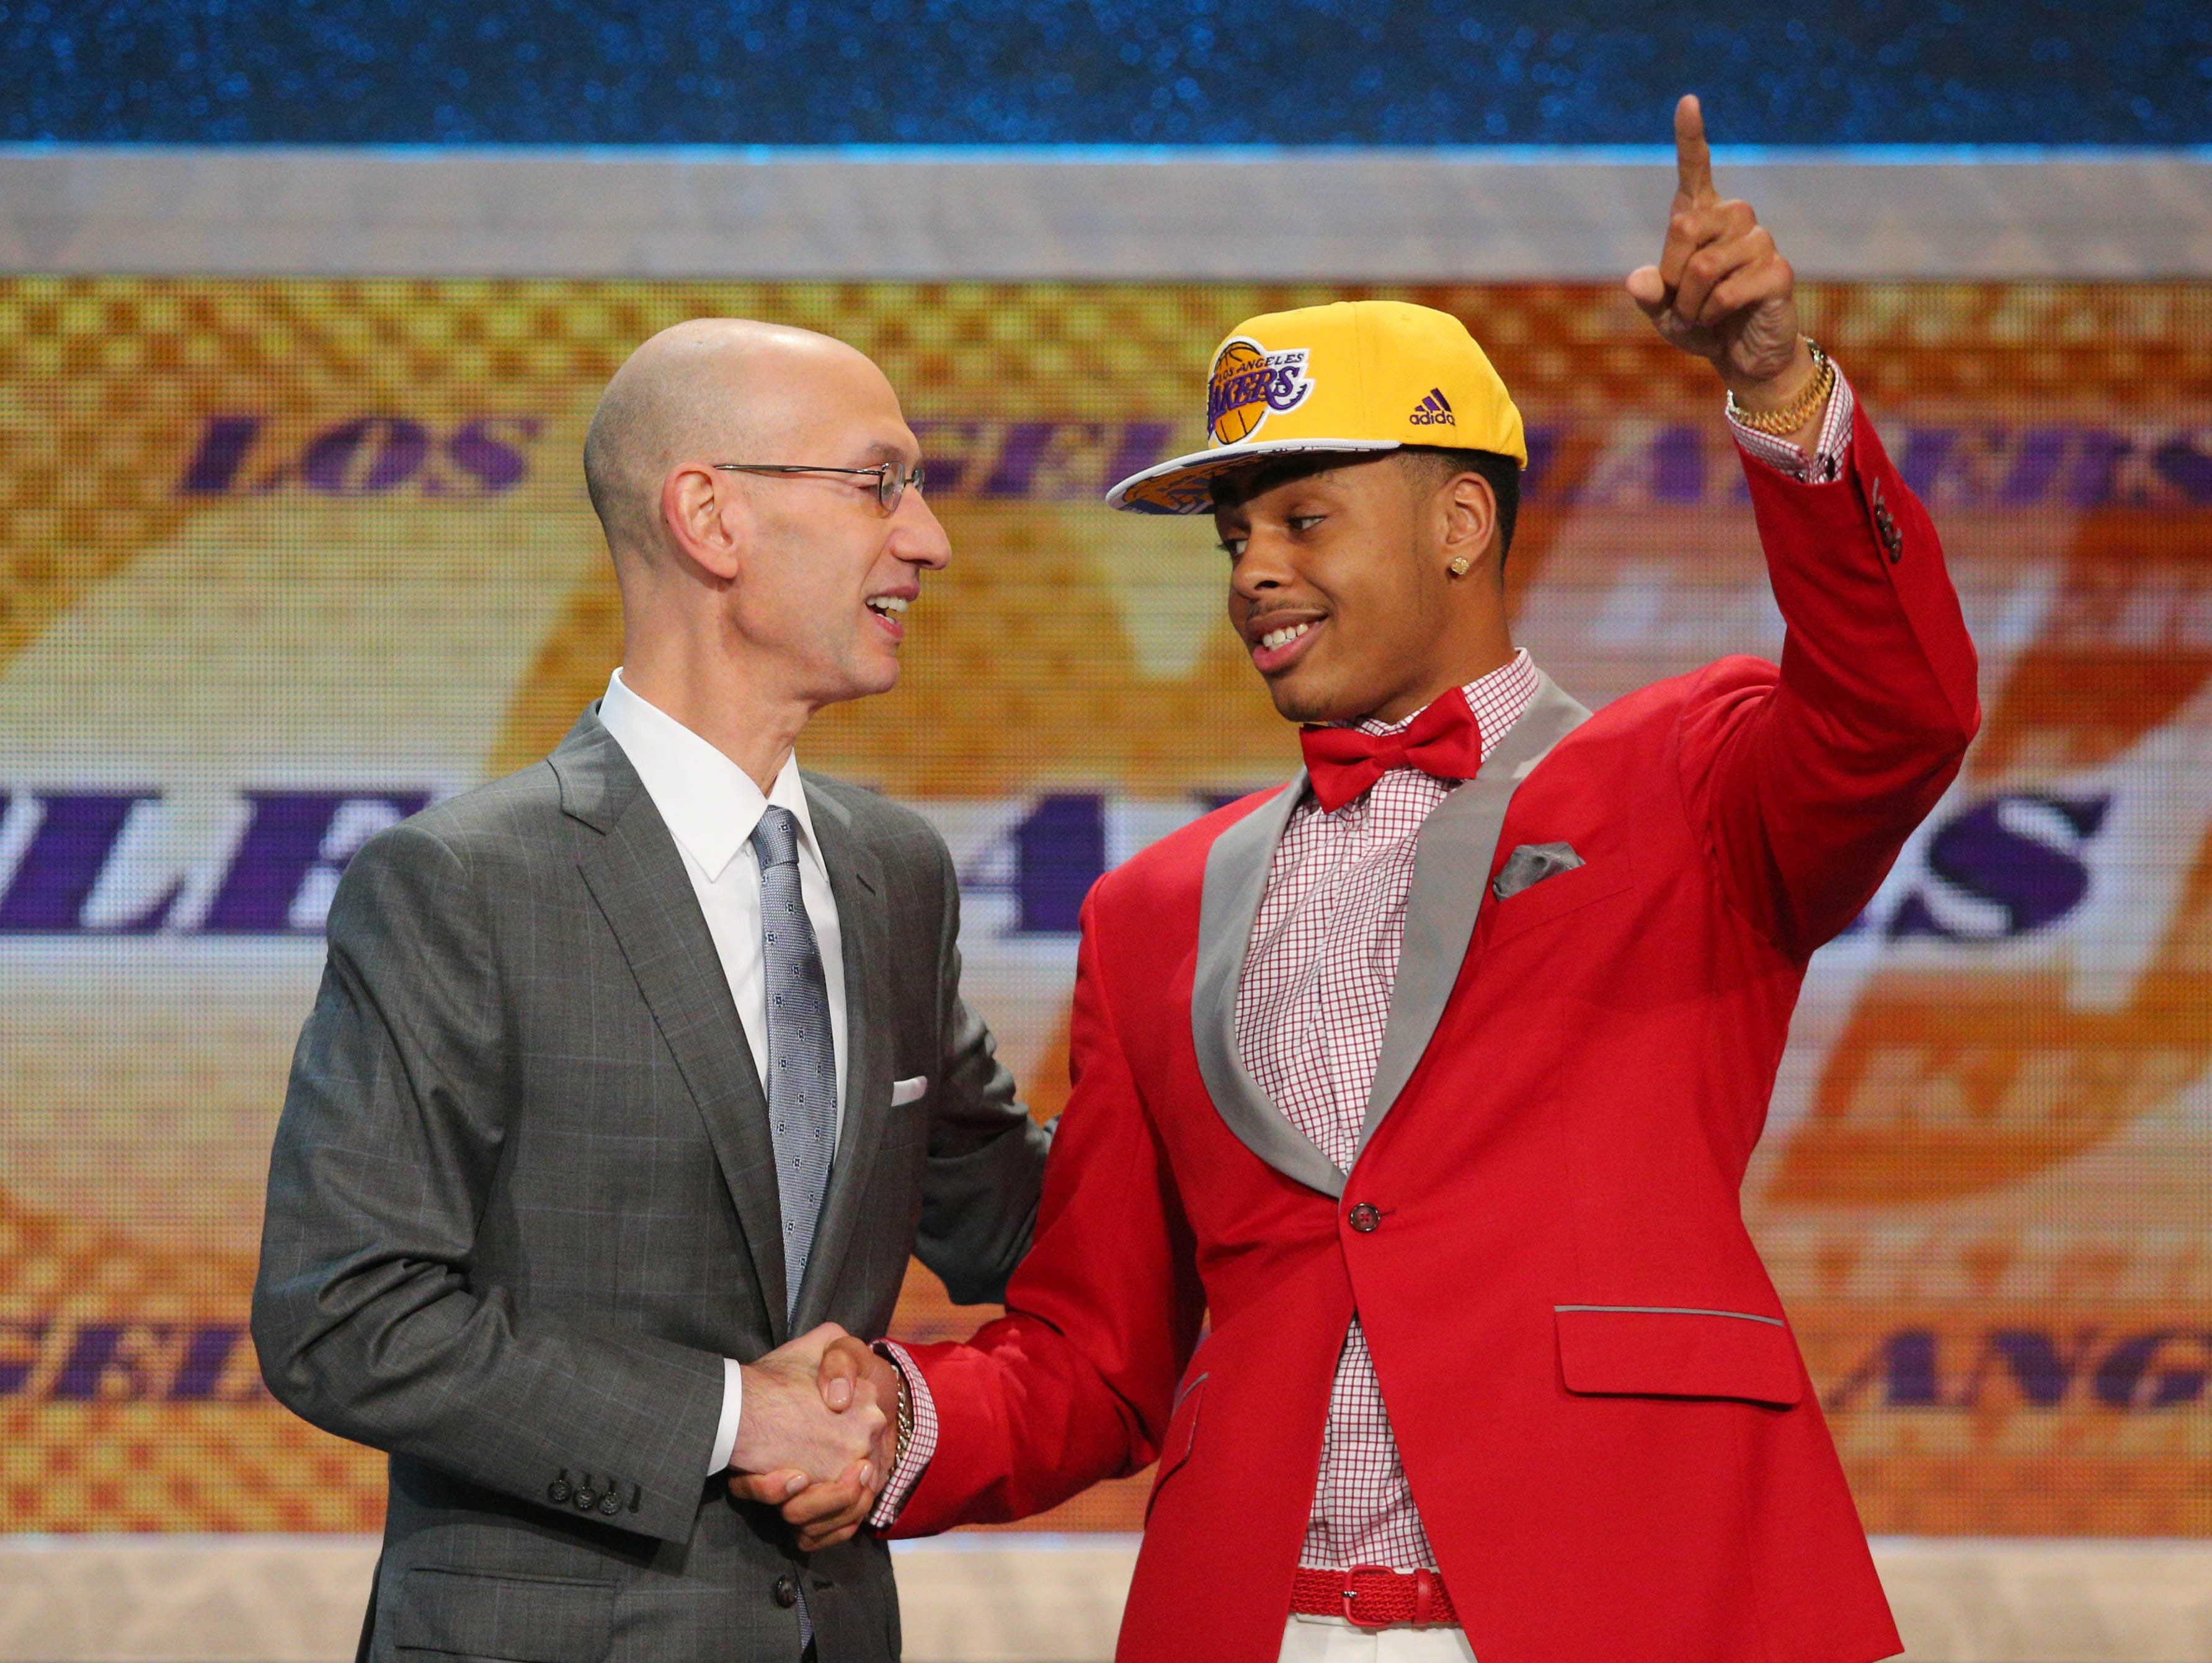 Jun 25, 2015; Brooklyn, NY, USA; D'Angelo Russell (Ohio State) shakes hands with NBA commissioner Adam Silver after being selected as the number two overall pick to the Los Angeles Lakers in the first round of the 2015 NBA Draft at Barclays Center. Mandatory Credit: Brad Penner-USA TODAY Sports